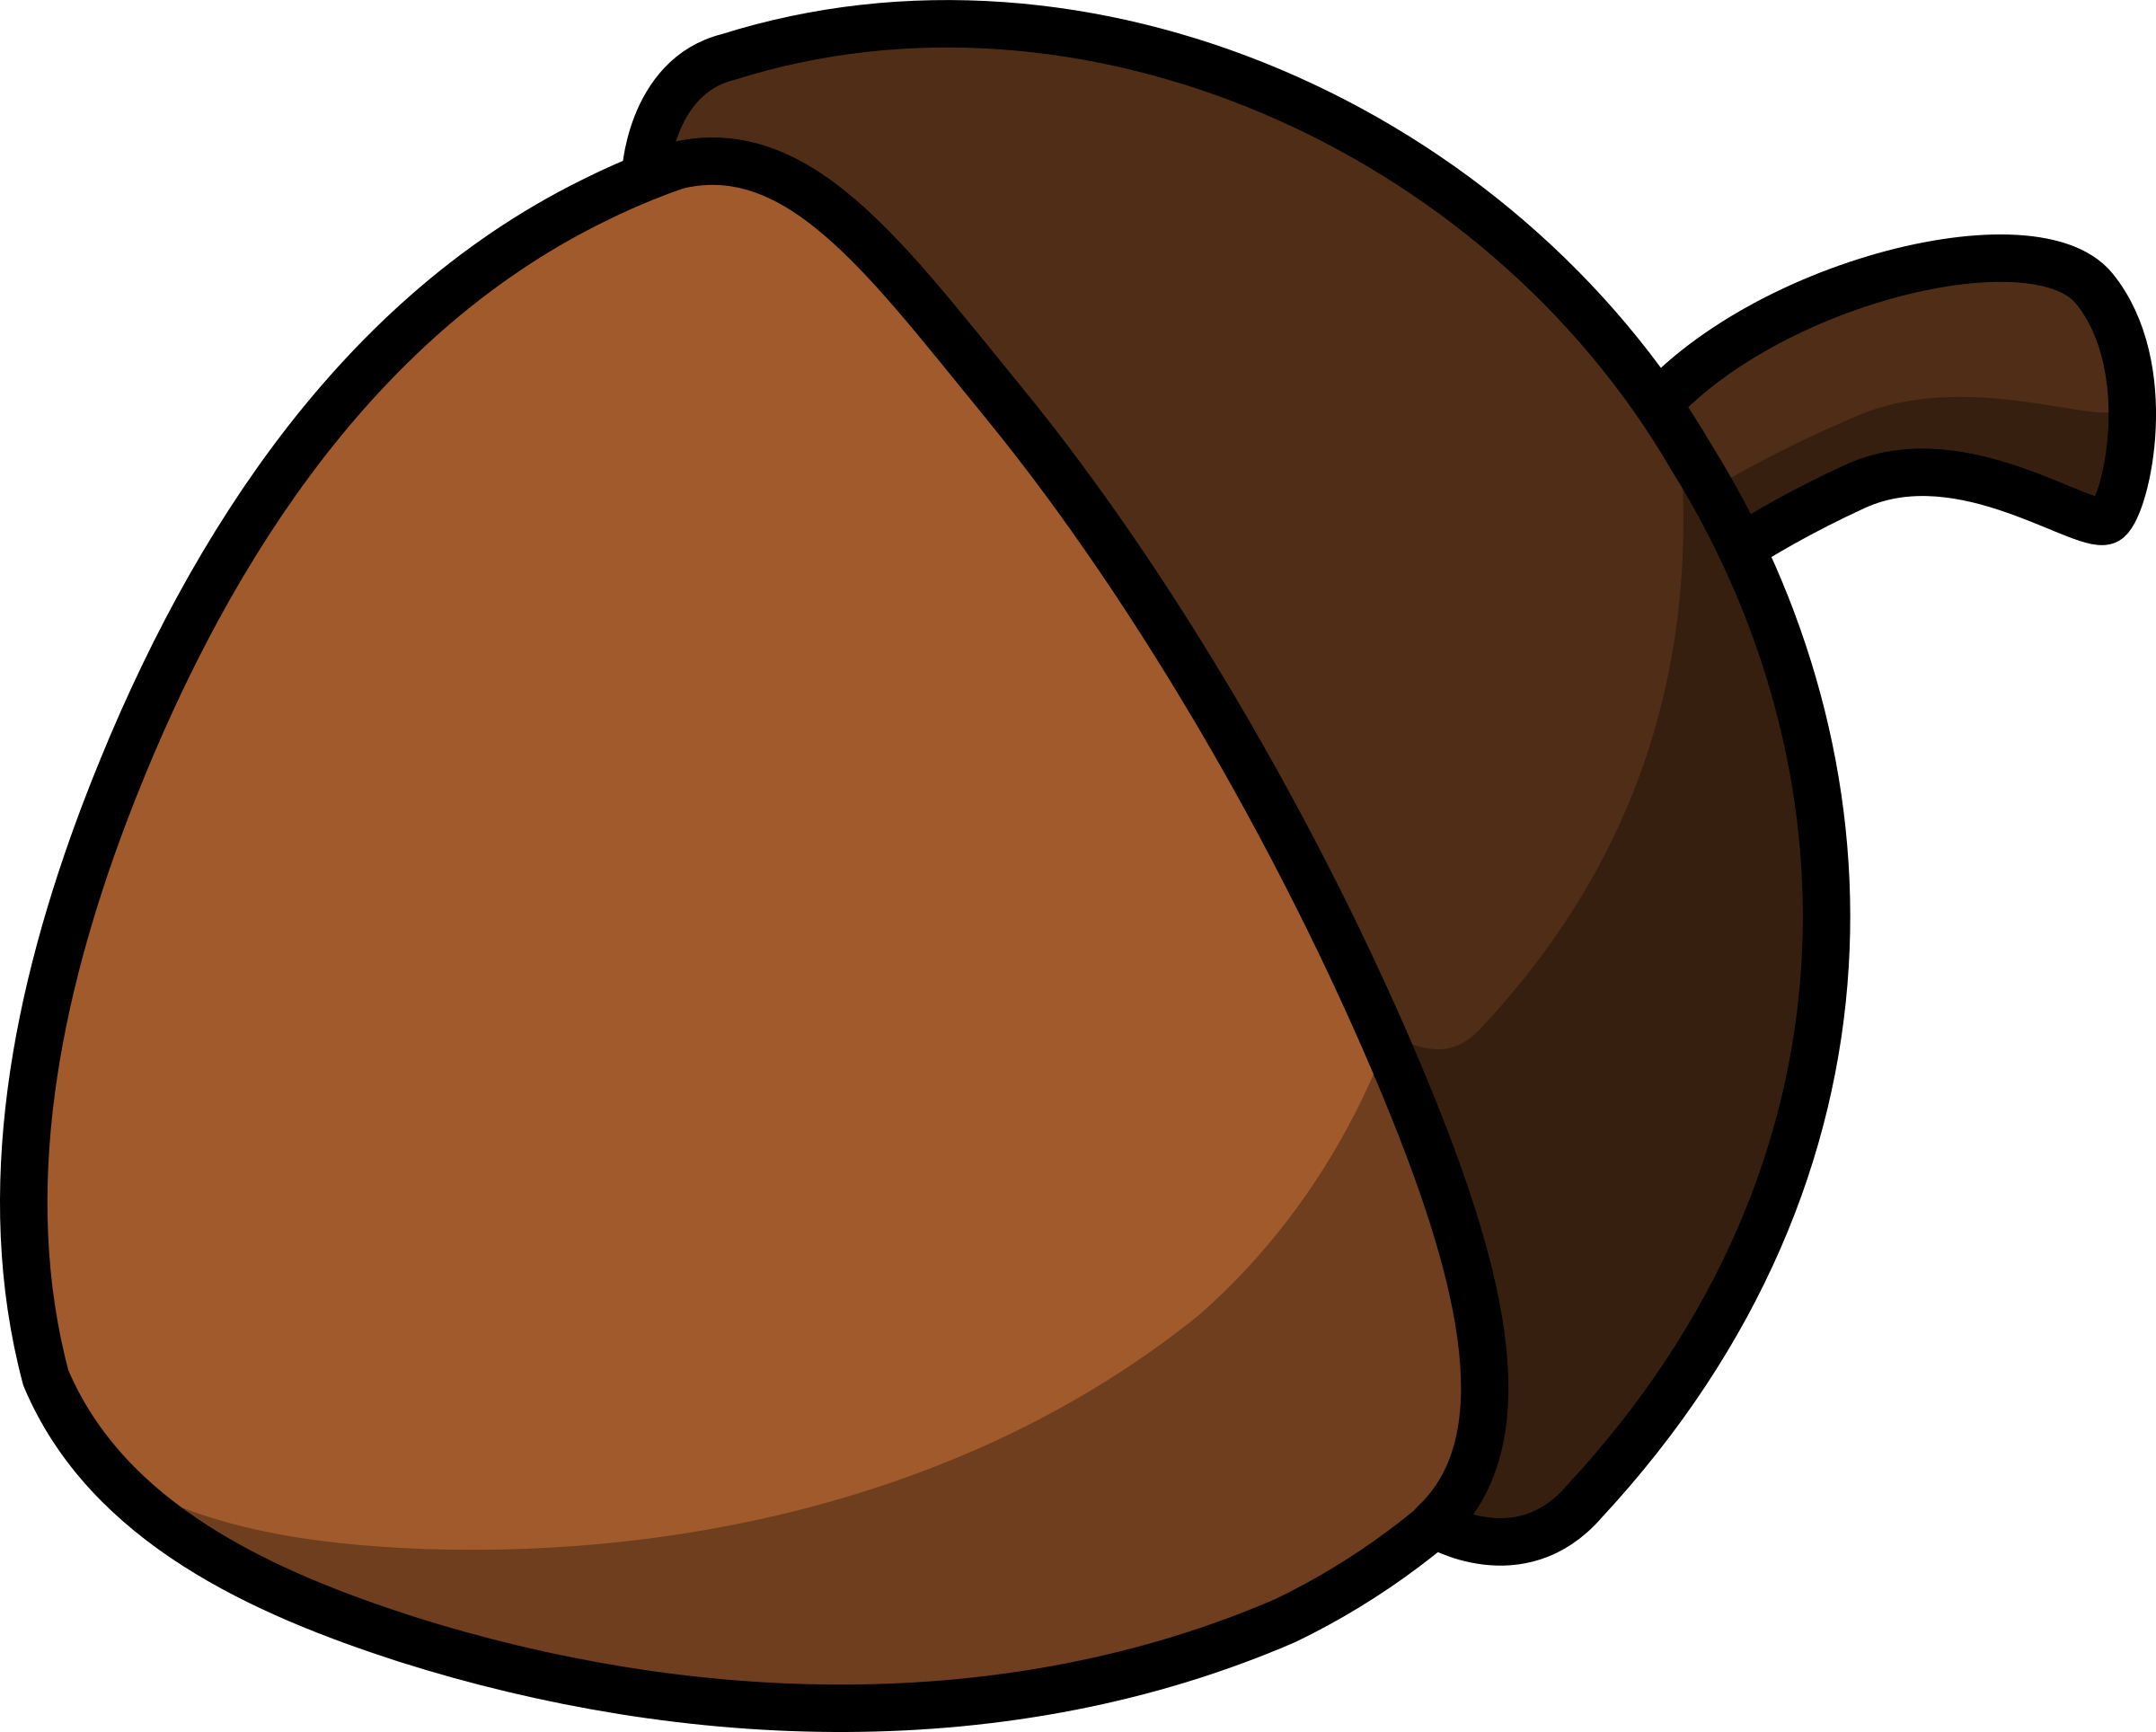 Woodland clipart alphabet. Cartoon acorn by lemmling